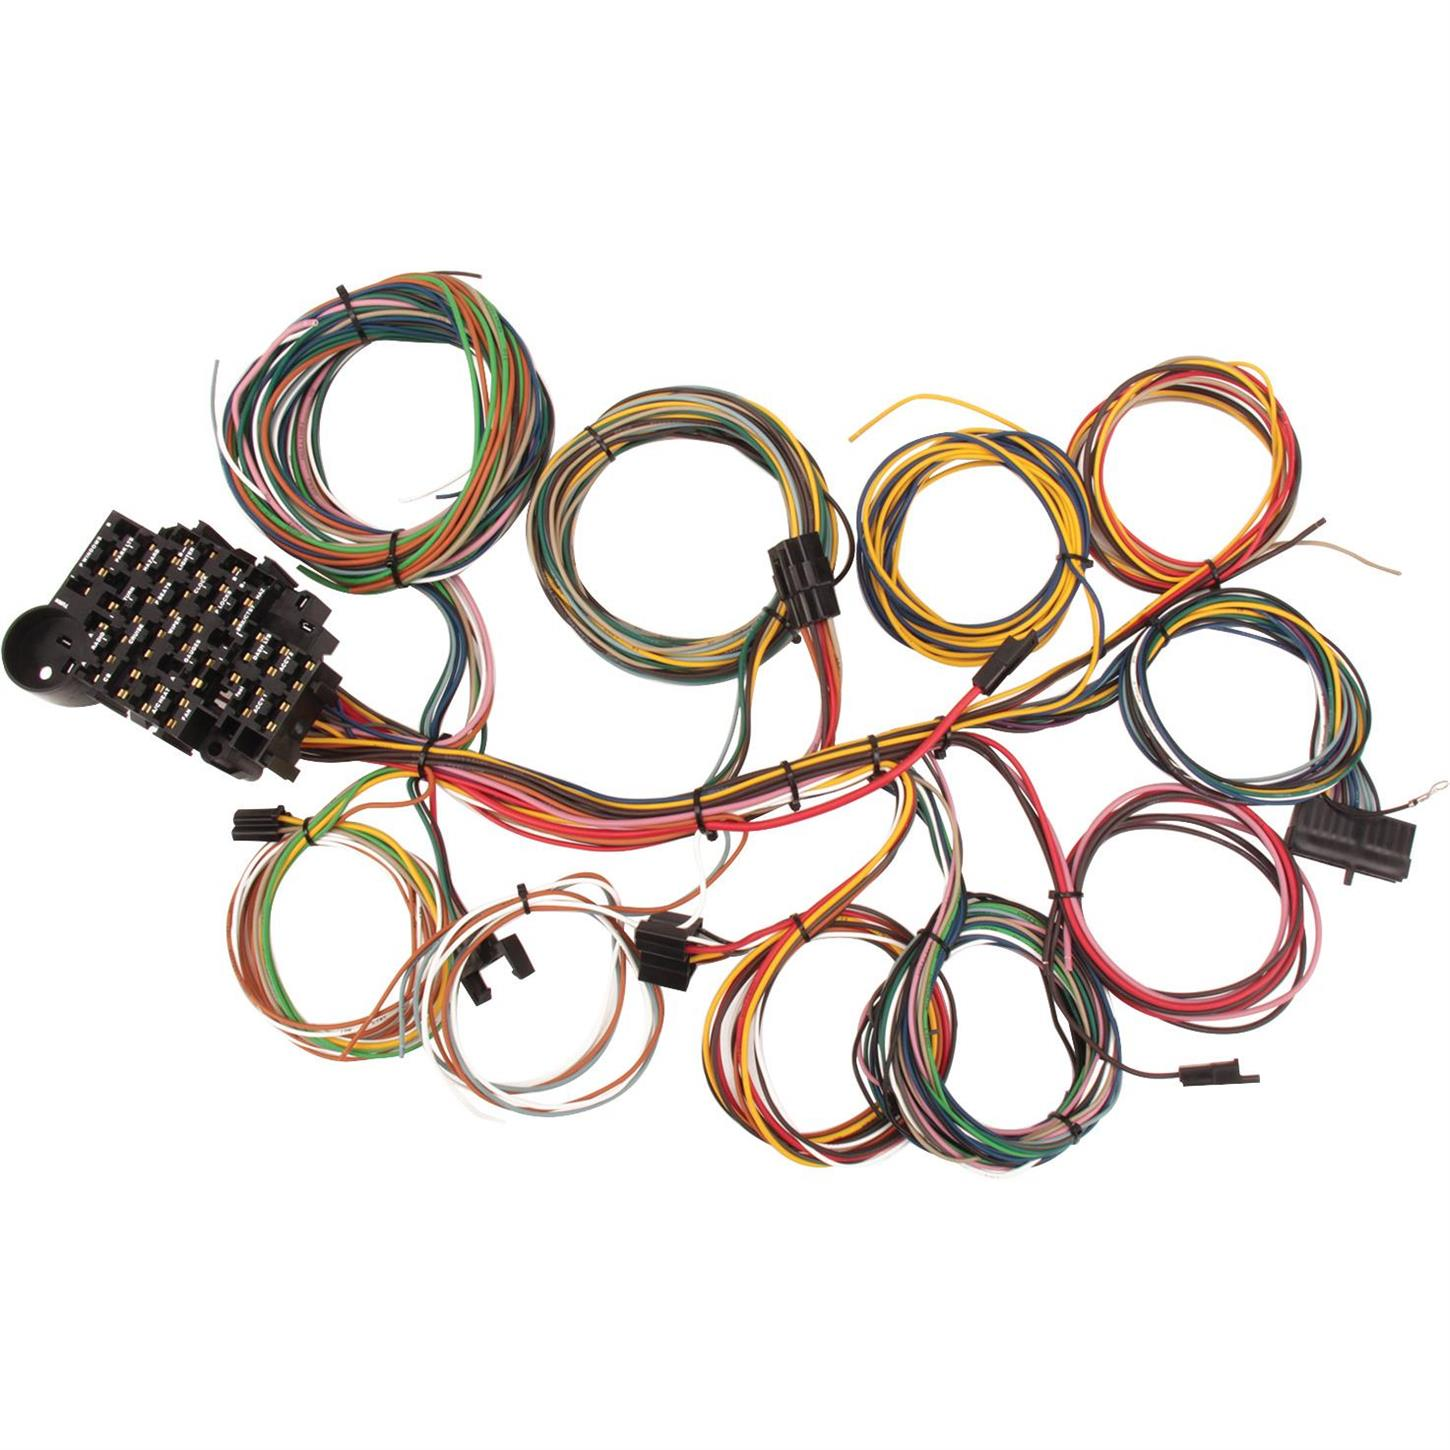 77 Jeep Cj7 Wire Harness Shop Chassis Harnesses Free Shipping Speedway Motors Universal 22 Circuit Wiring